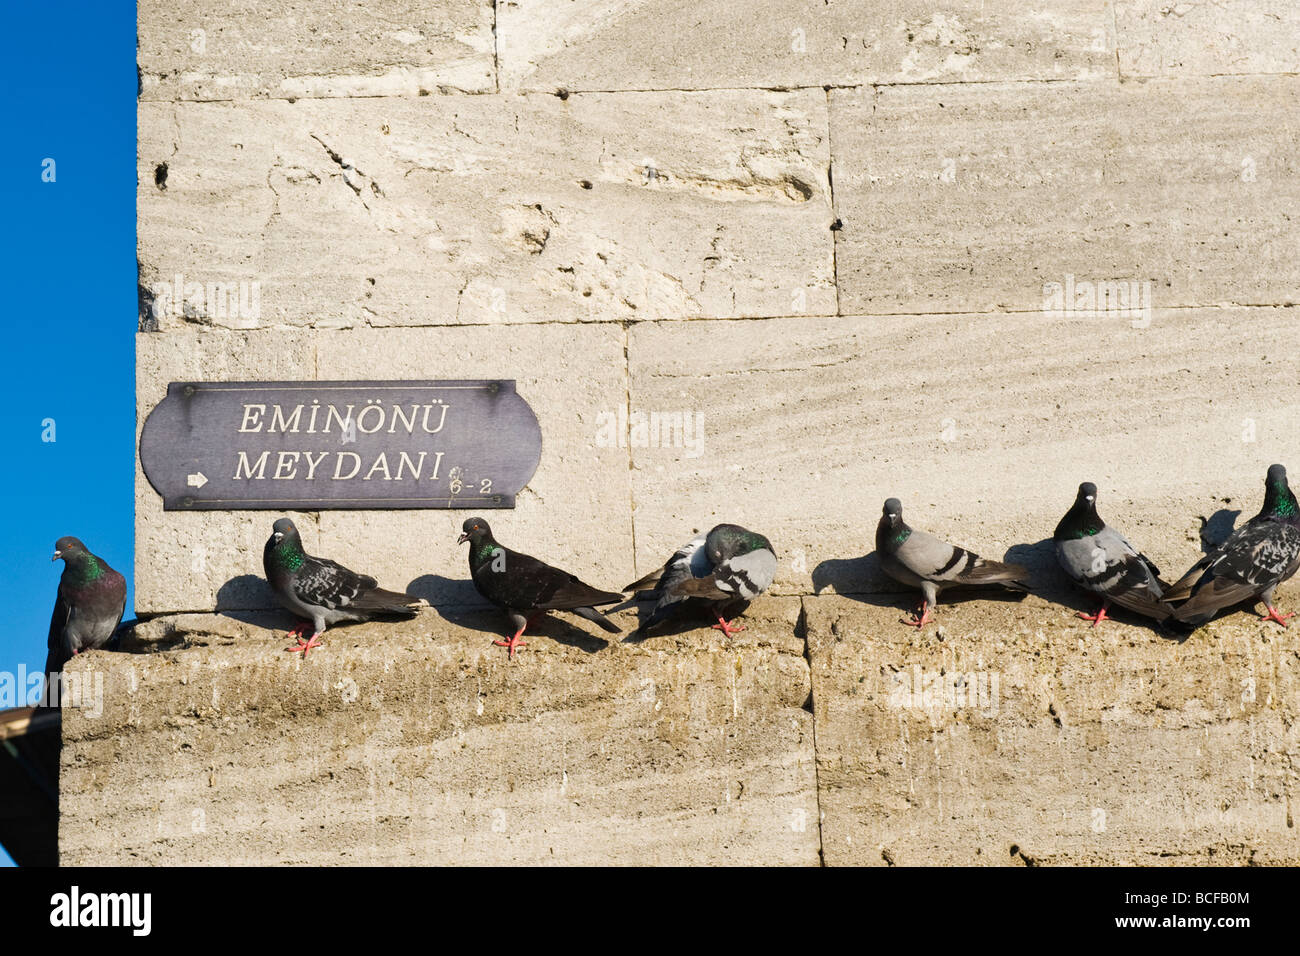 Turkey , Istanbul , Eminonu Meydani , New Mosque or Yeni Cami , pigeons perch on wall waiting for visitors to feed - Stock Image